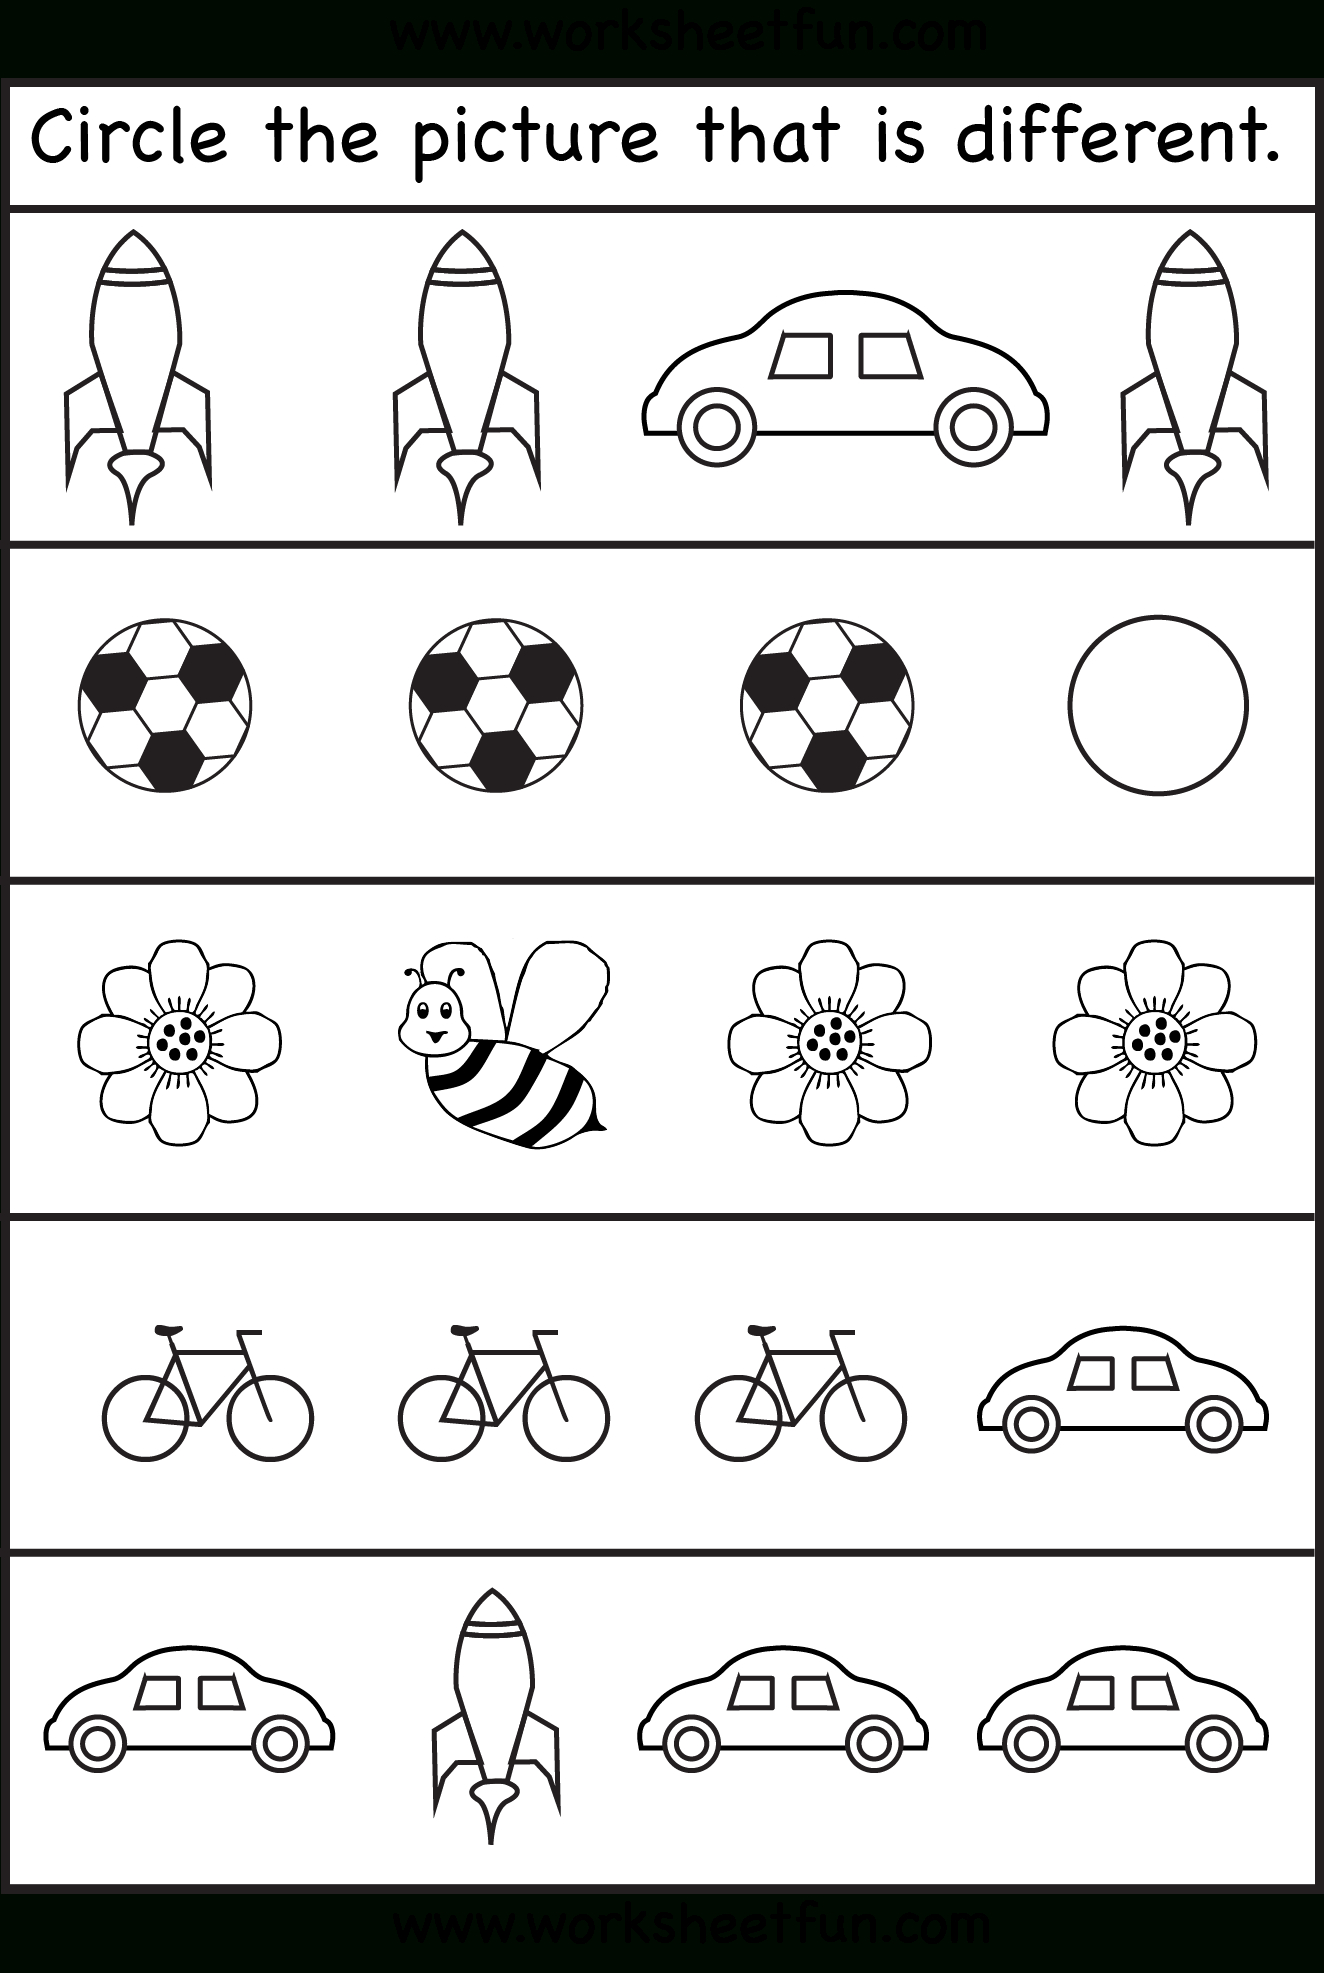 Circle The Picture That Is Different - 4 Worksheets | Preschool Work - Toddler Learning Activities Printable Free